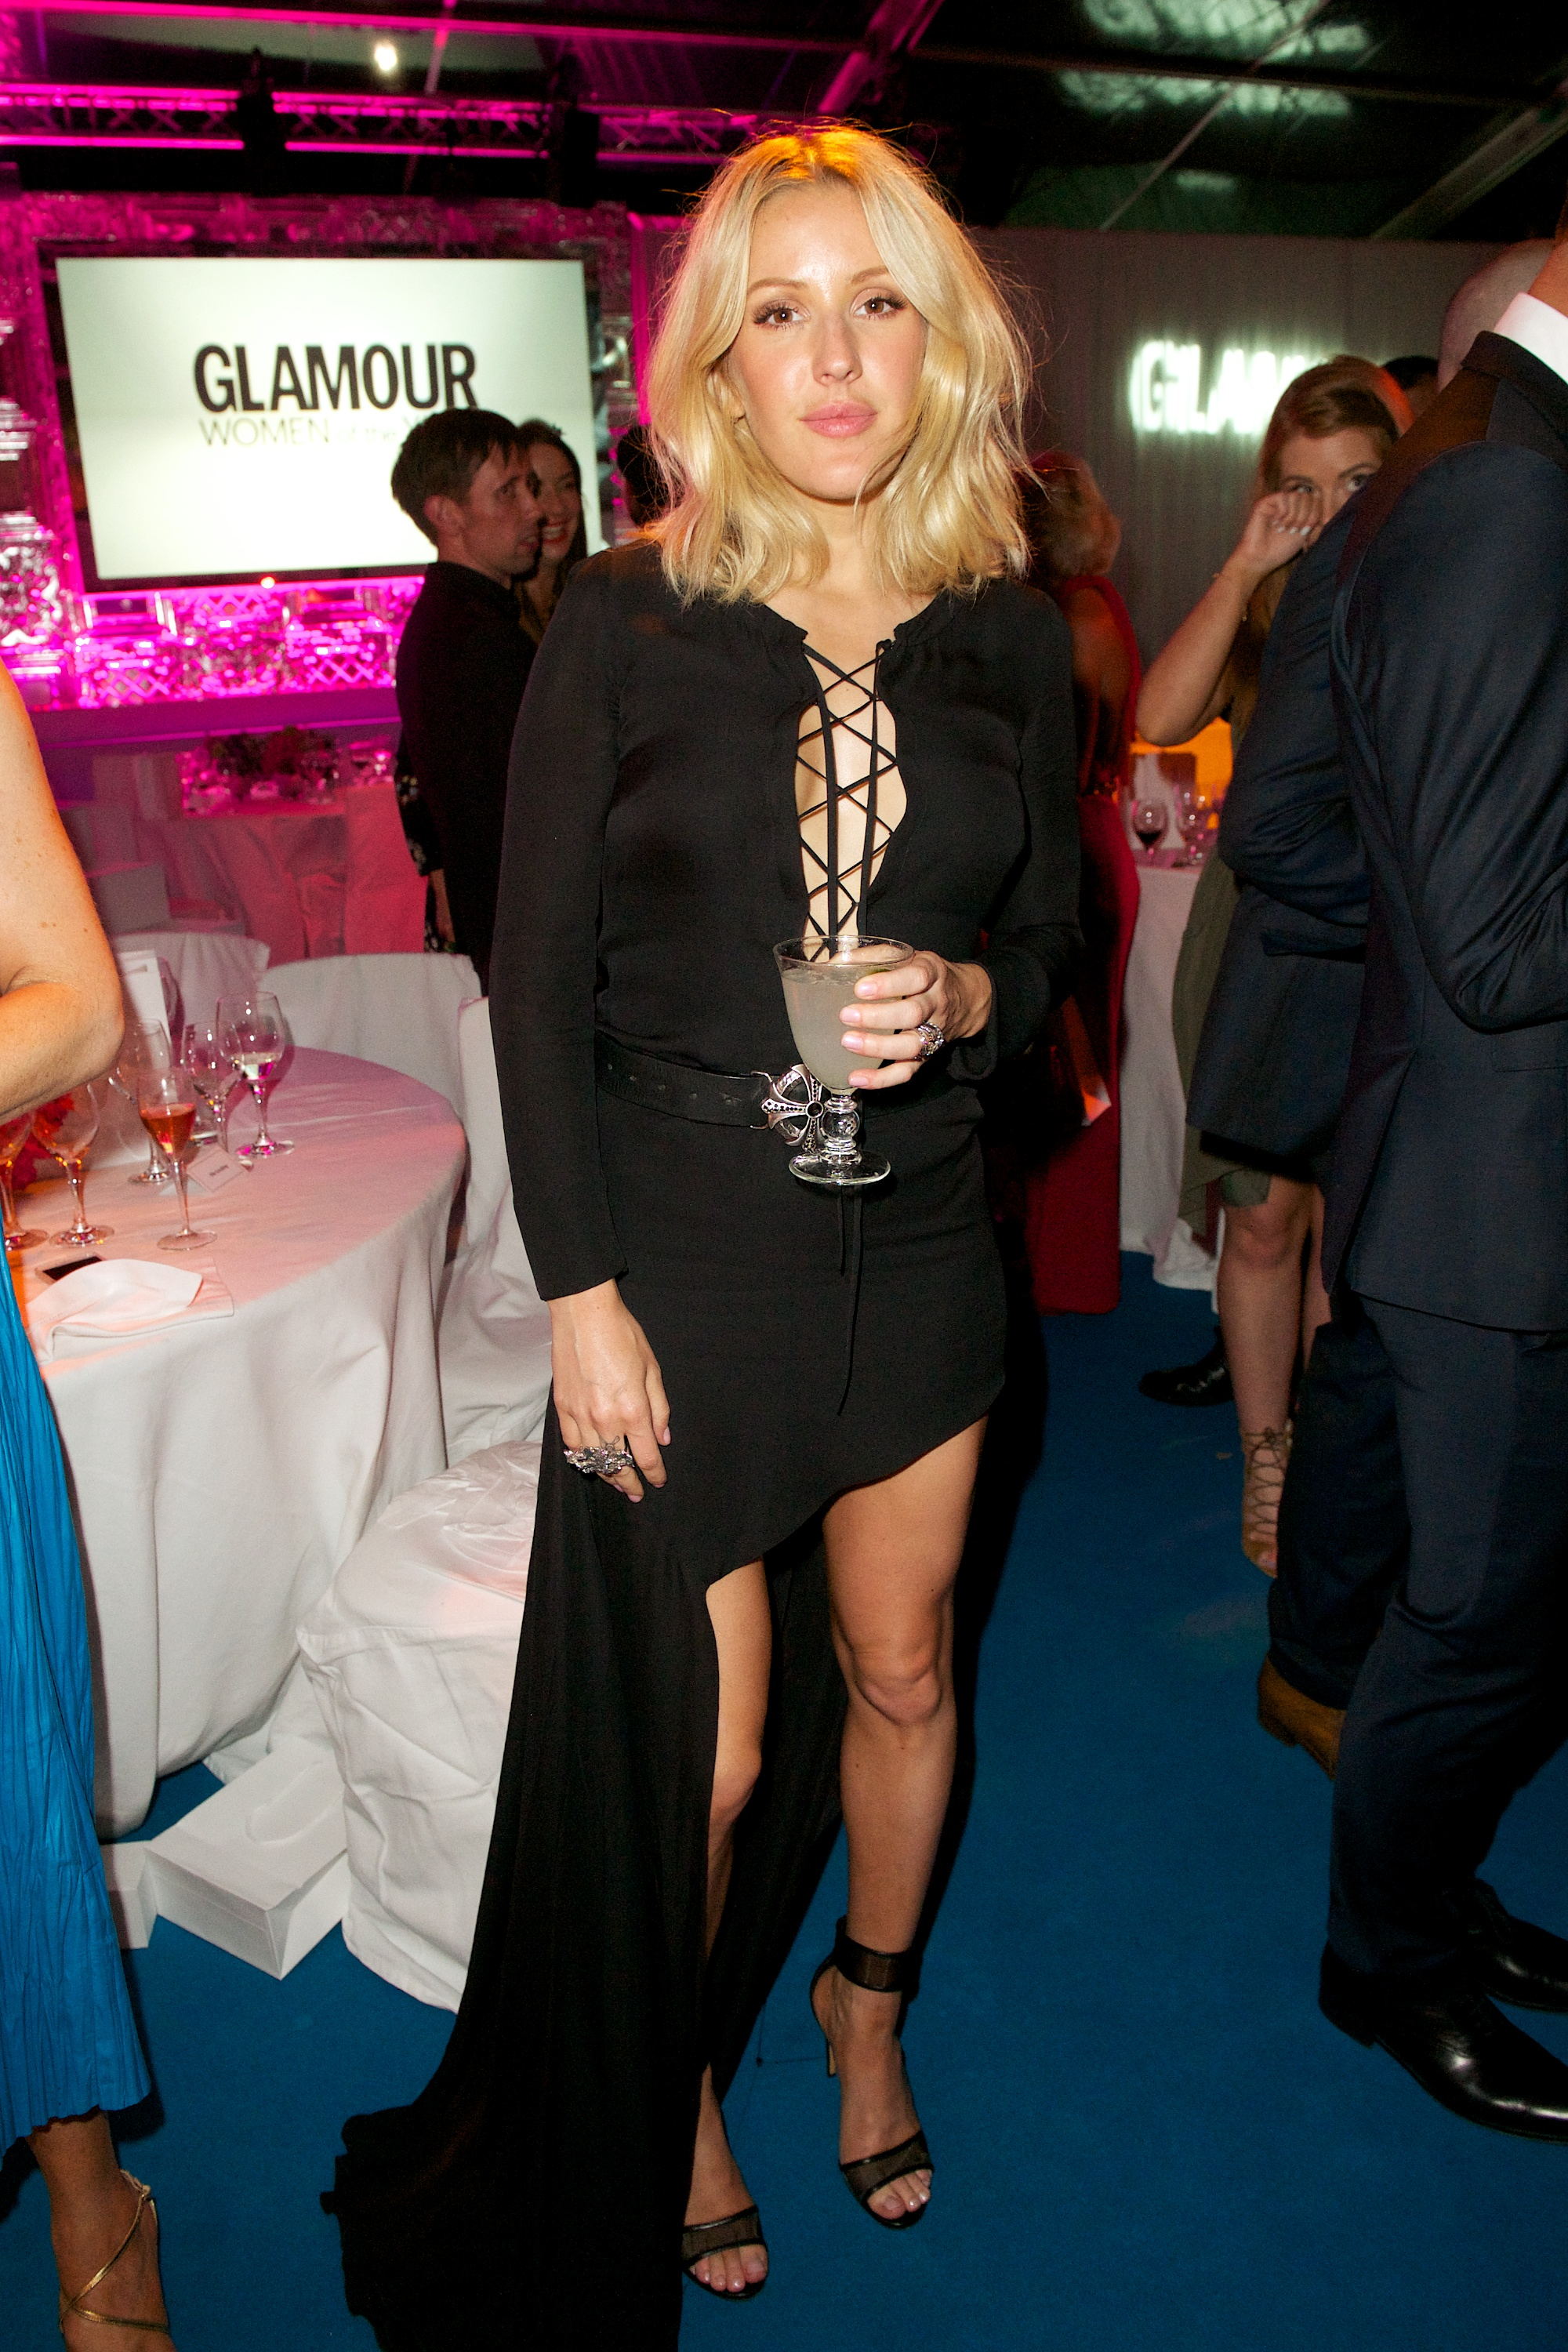 Glamour Awards Afterparty